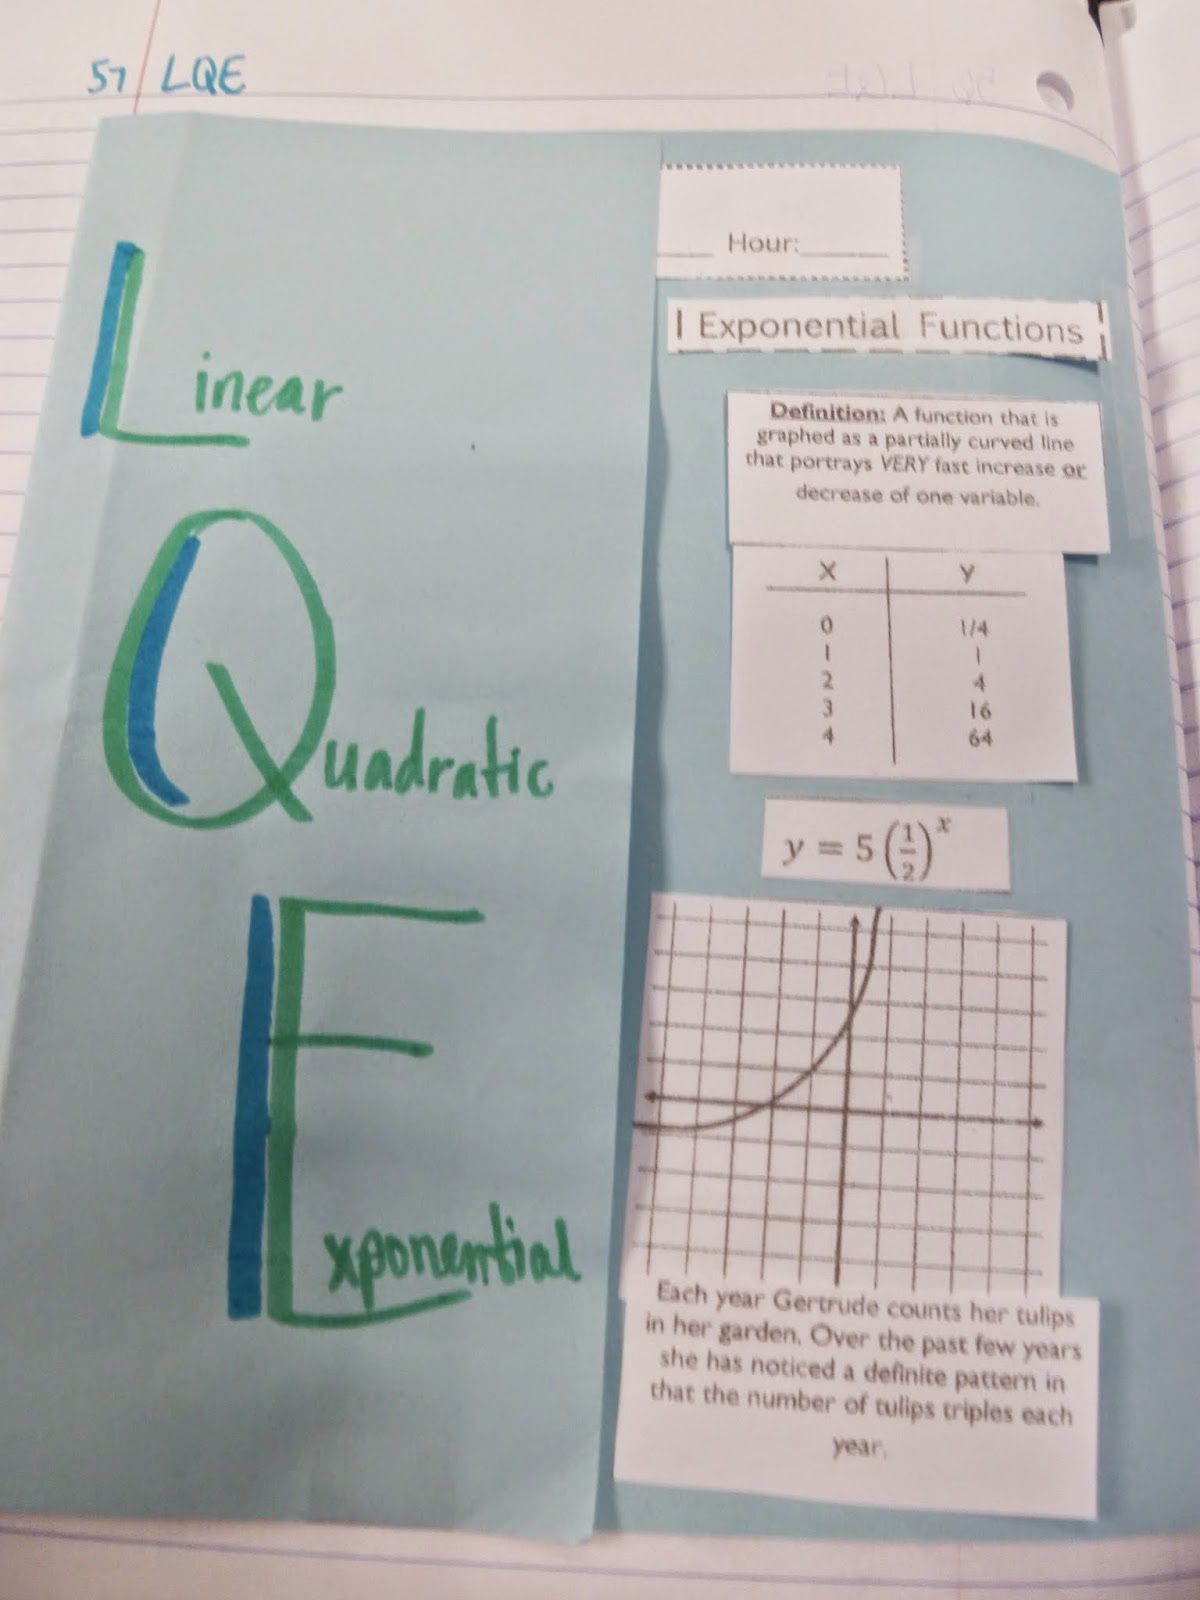 worksheet Comparing Linear And Exponential Functions Worksheet 1000 images about comparing functions on pinterest quadratic function activities and equation